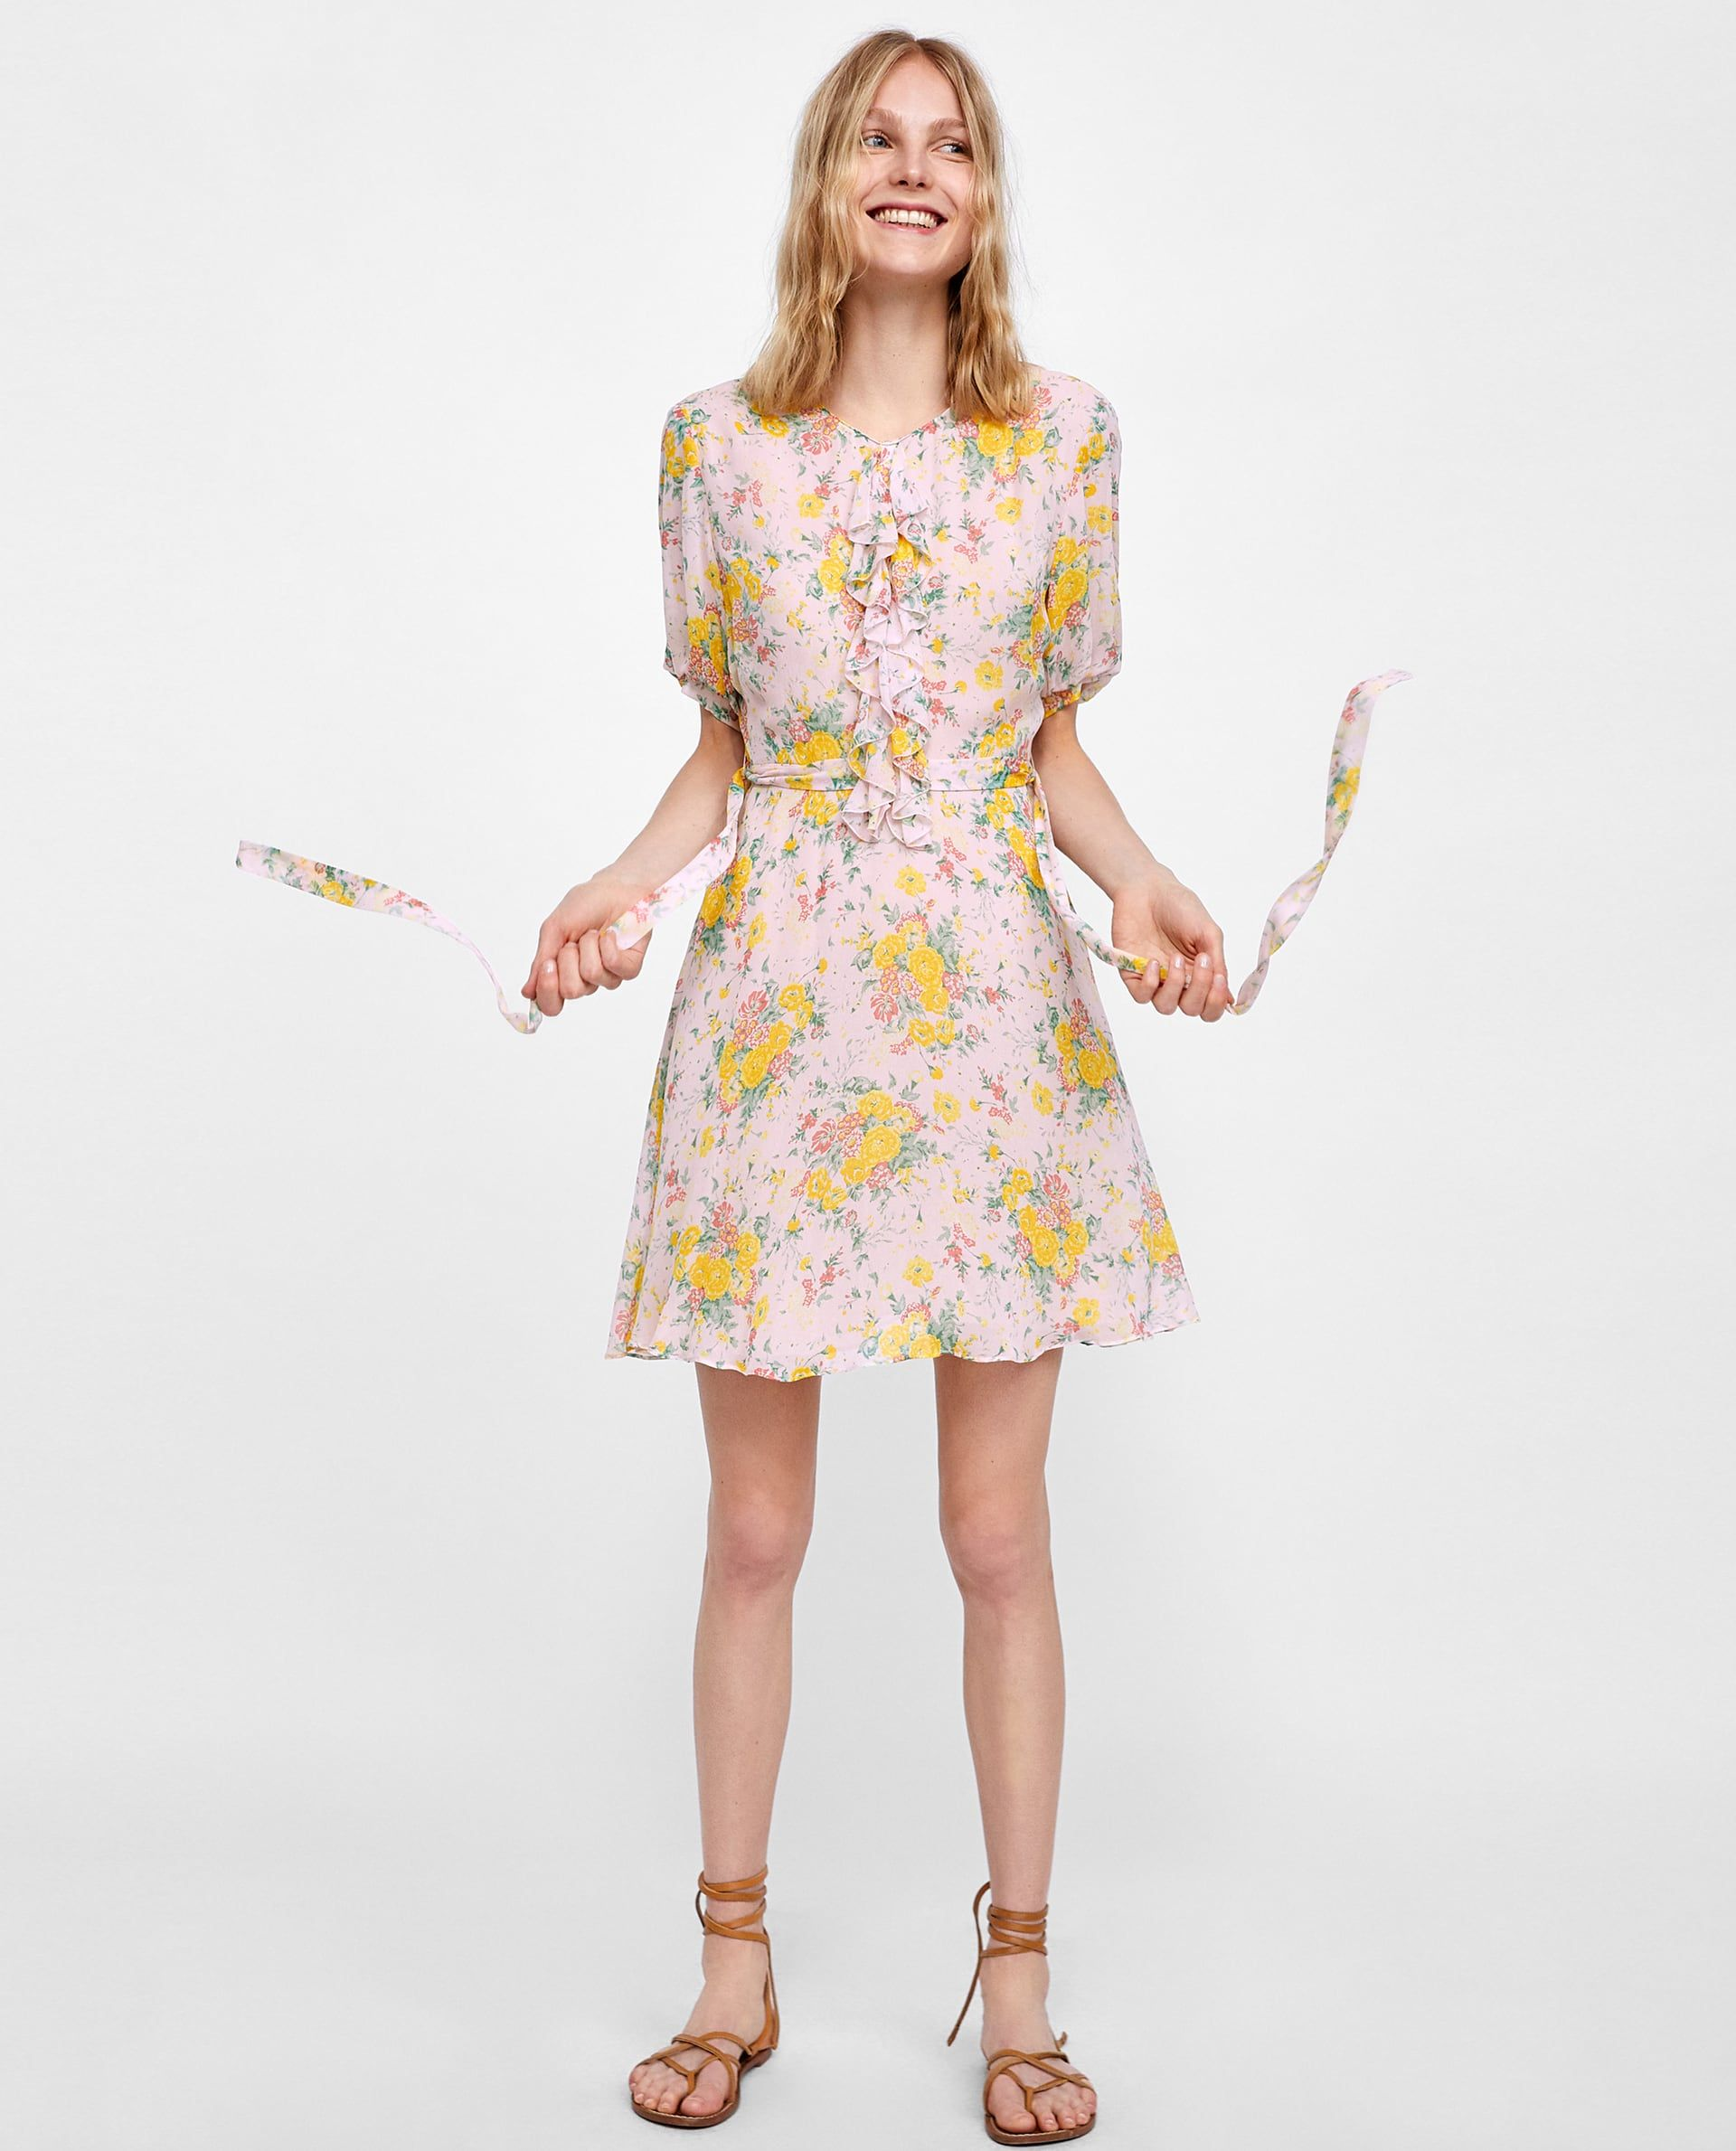 Image 1 Of Floral Print Dress From Zara Dresses Floral Dress Wedding Guest Floral Print Dress [ jpg ]